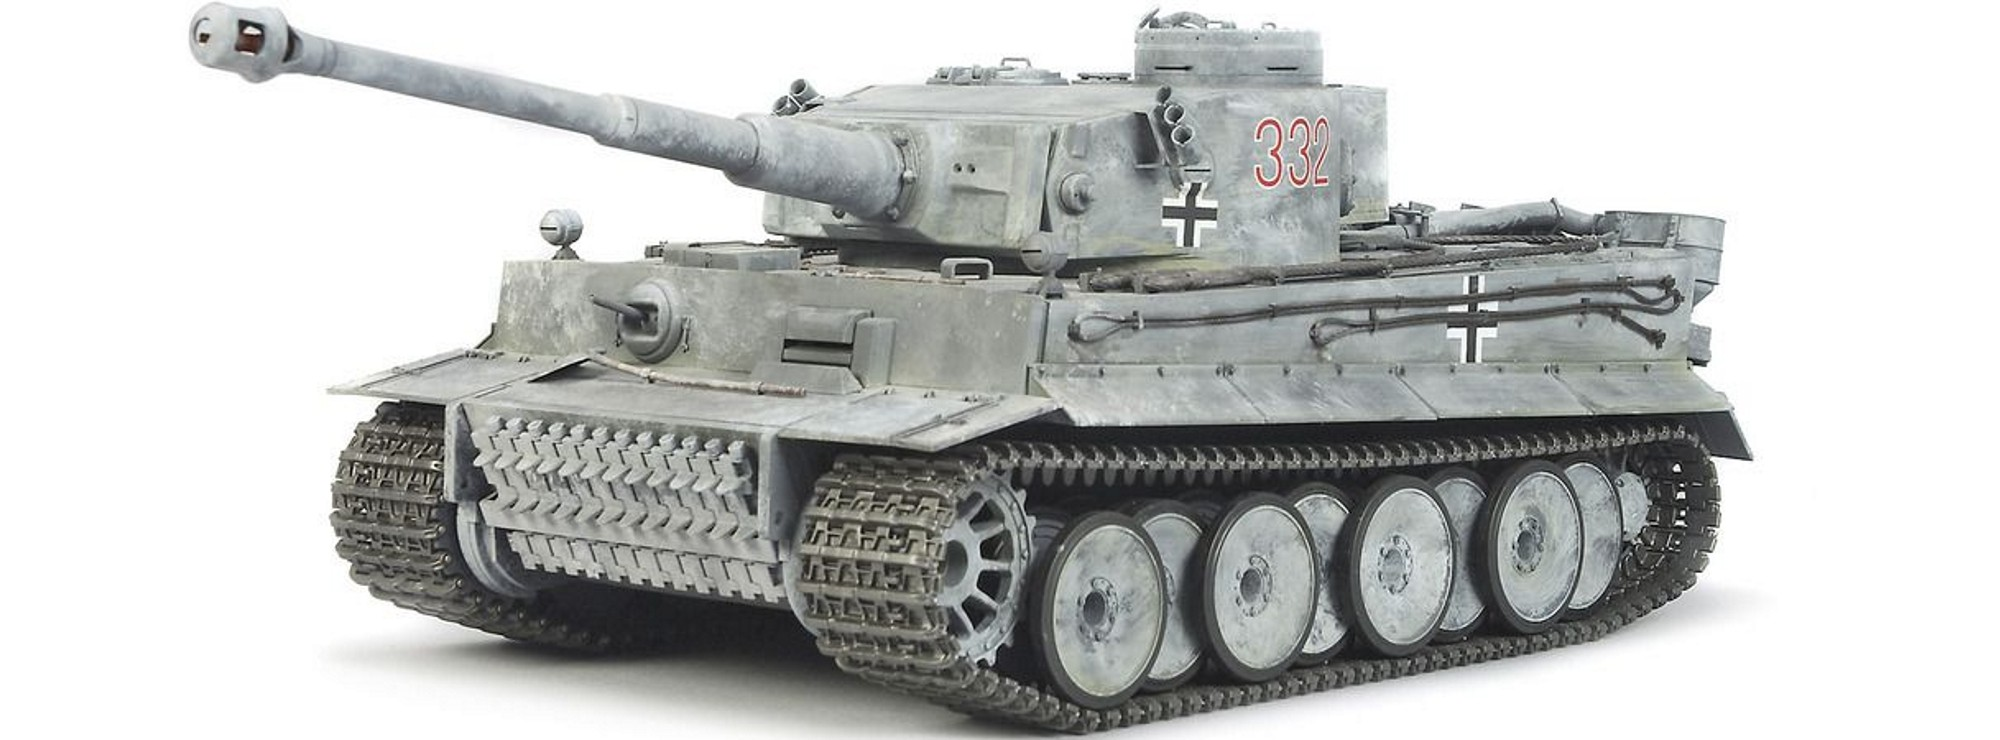 tamiya 56010 panzer tiger 1 dmd full option rc panzer. Black Bedroom Furniture Sets. Home Design Ideas